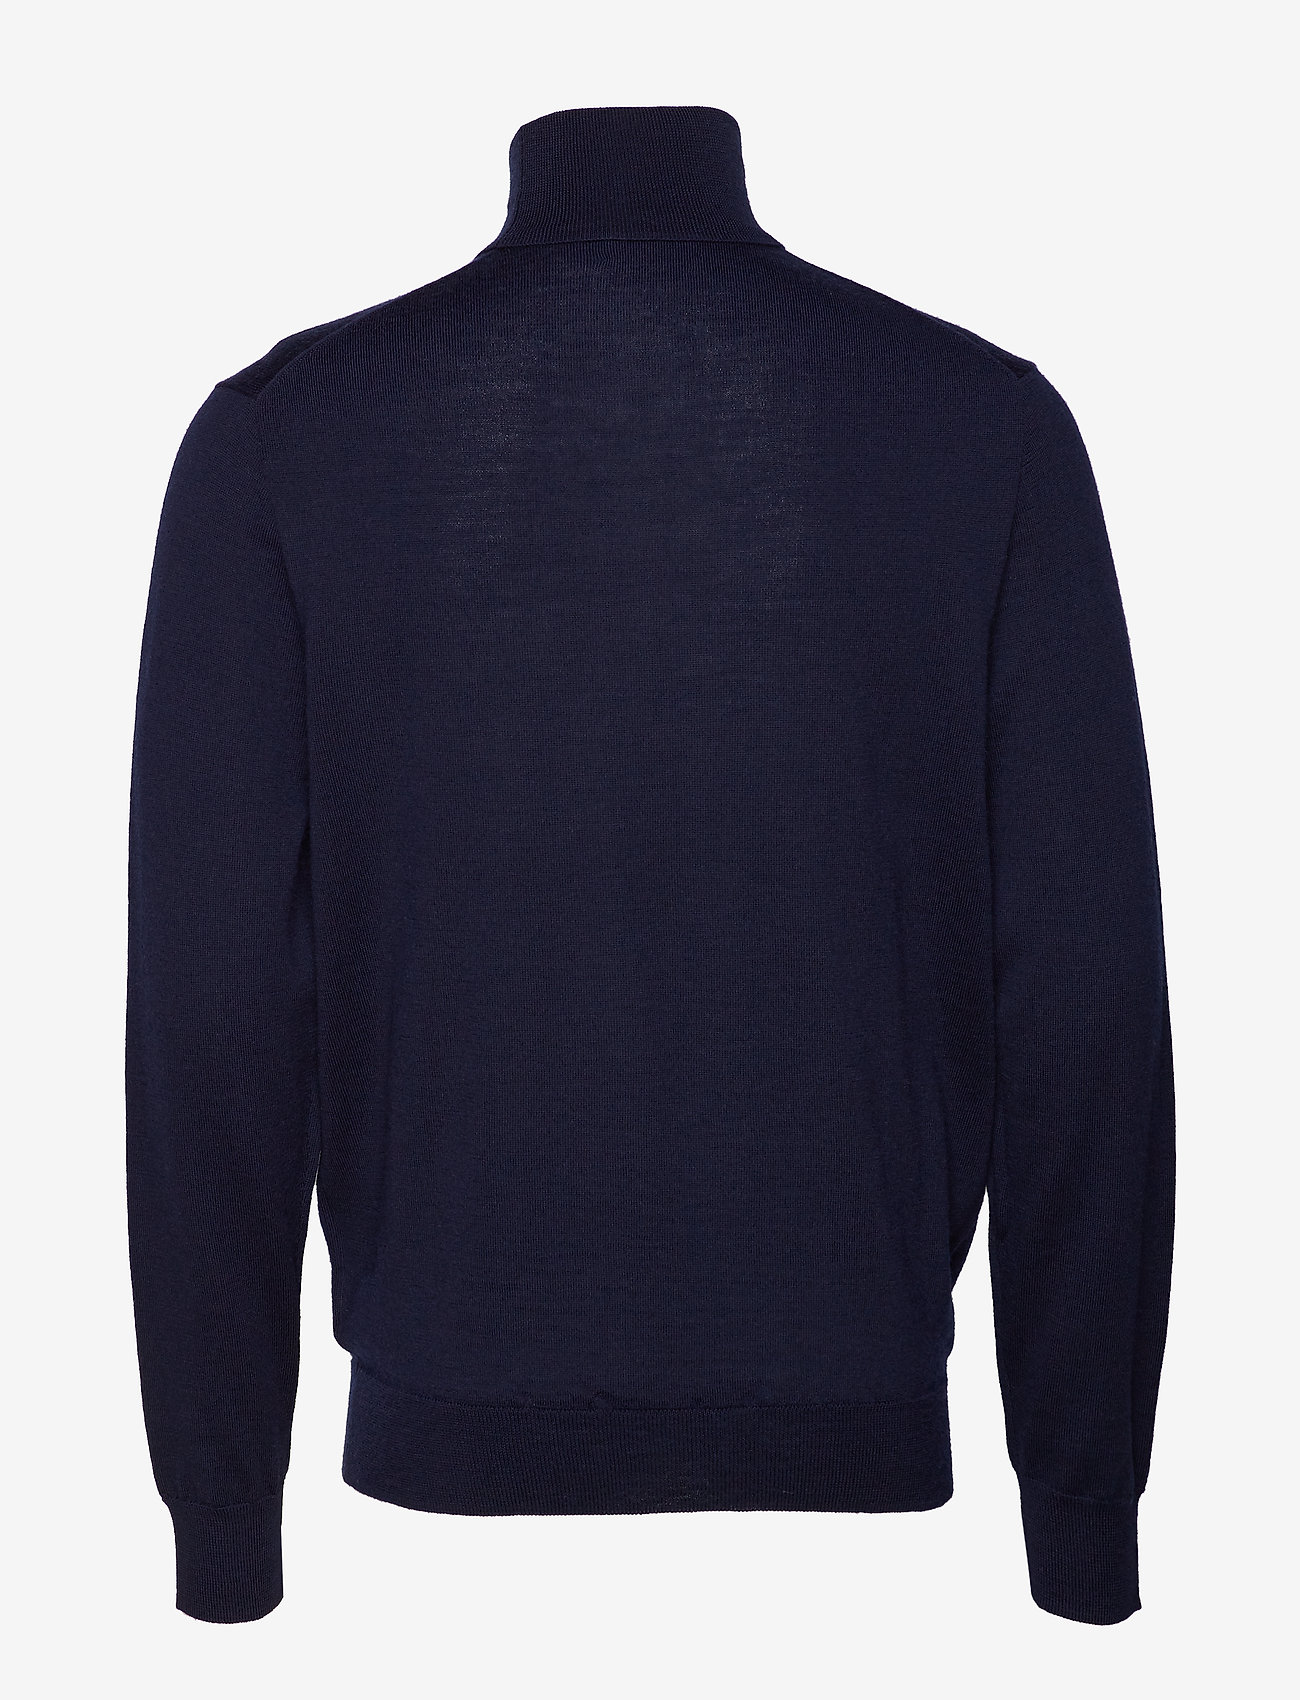 Washable Merino Wool Sweater (Hunter Navy) - Polo Ralph Lauren epKuIk